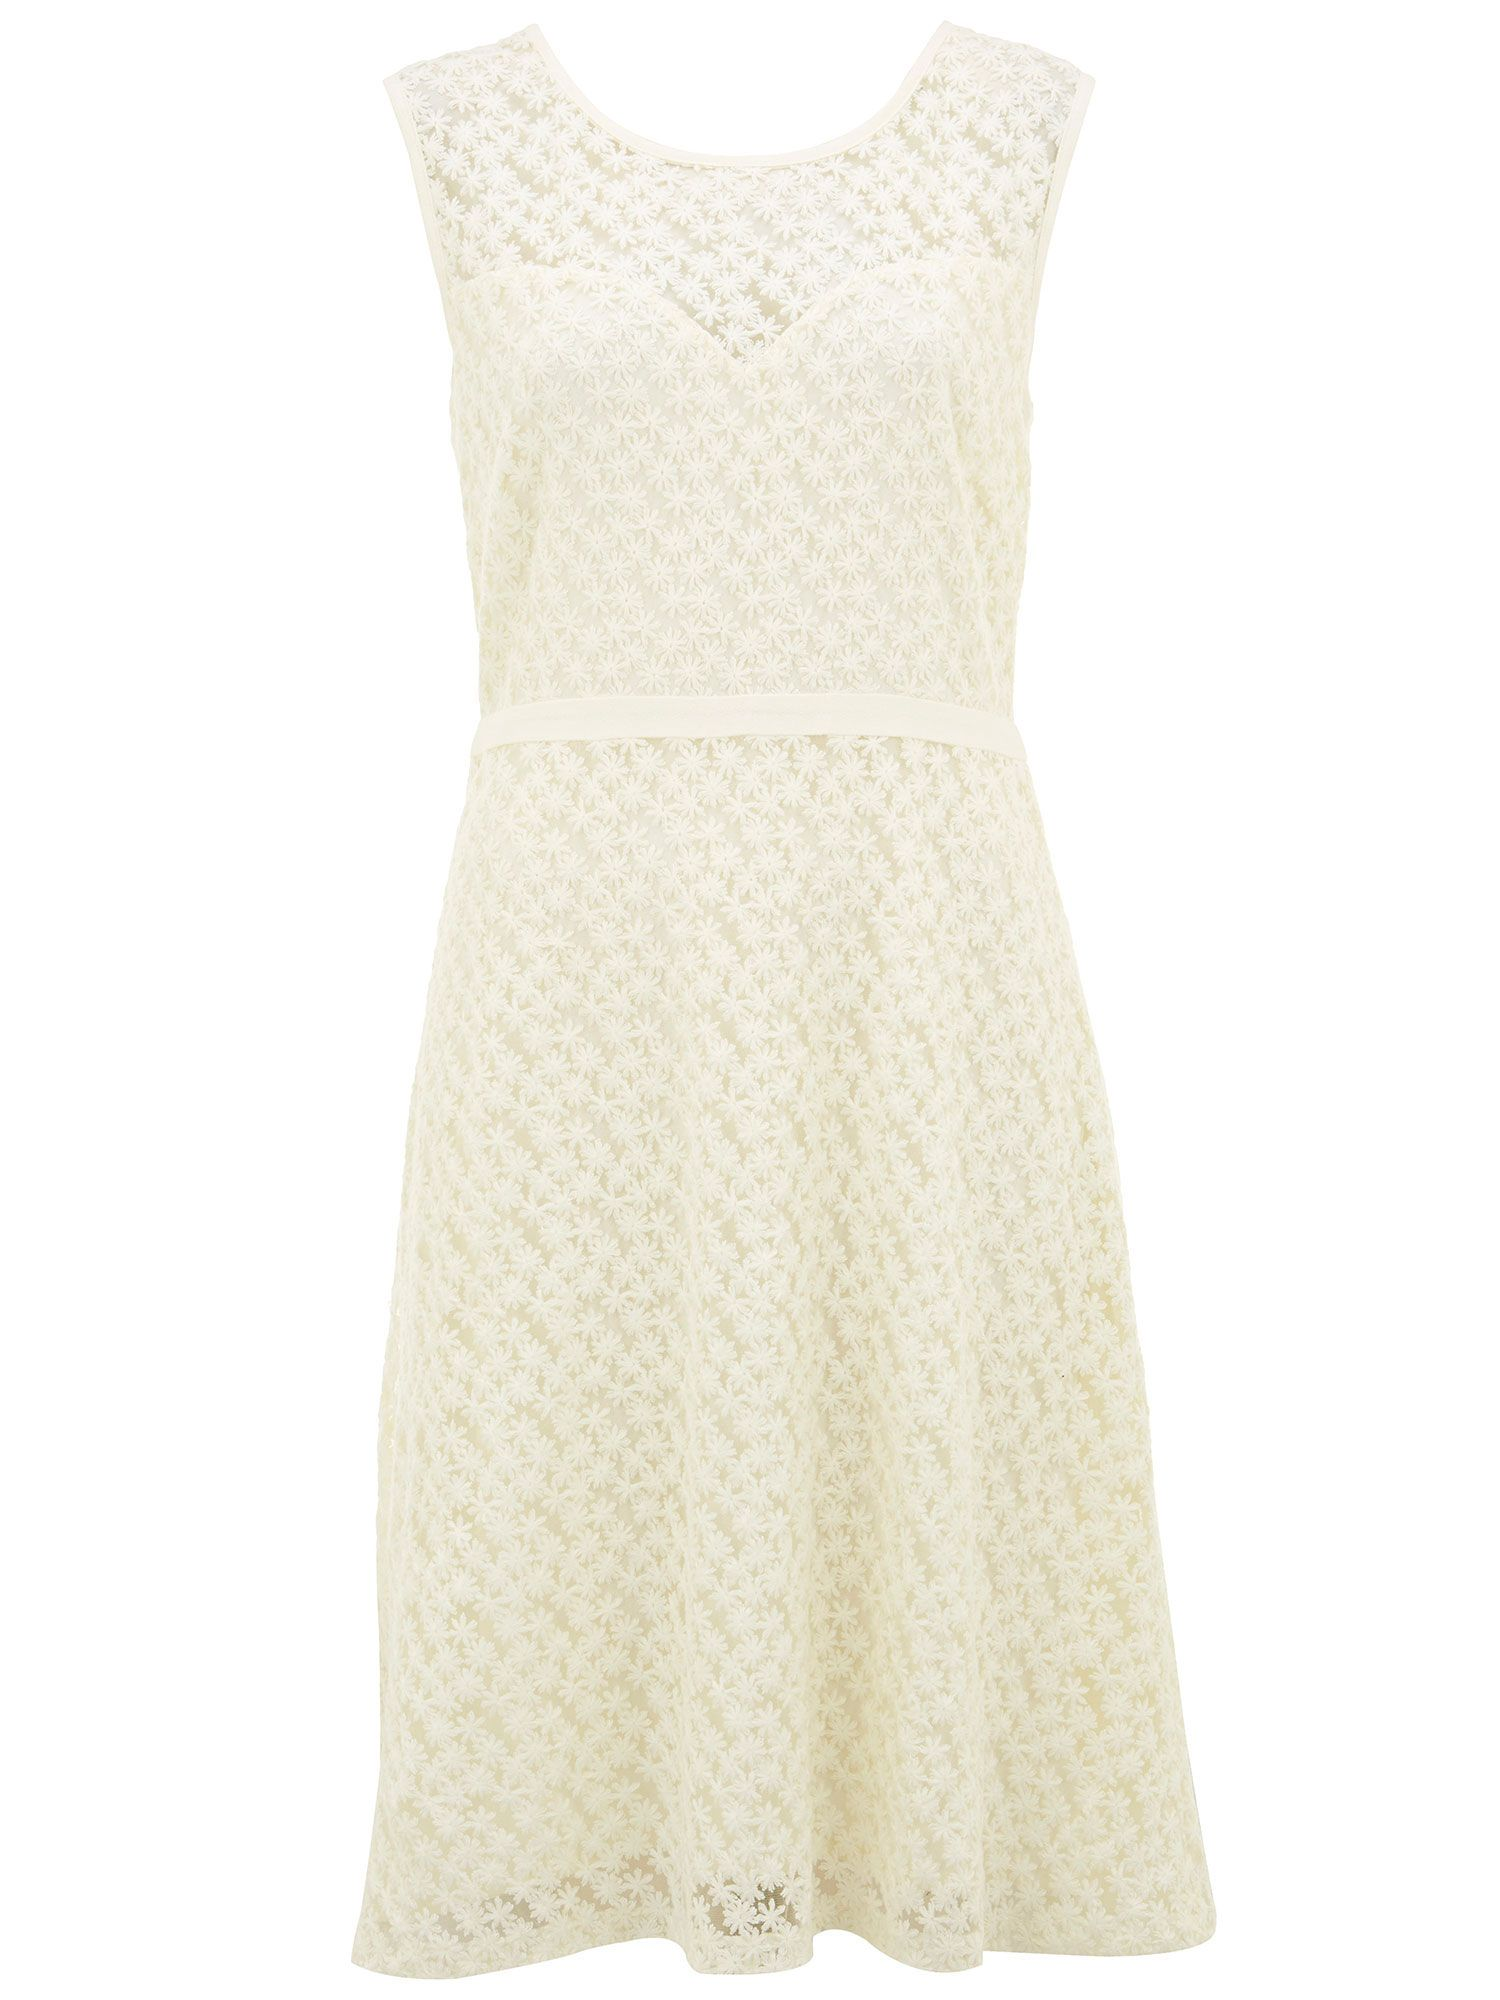 Nougat London Lace Embroidered Dress, Cream